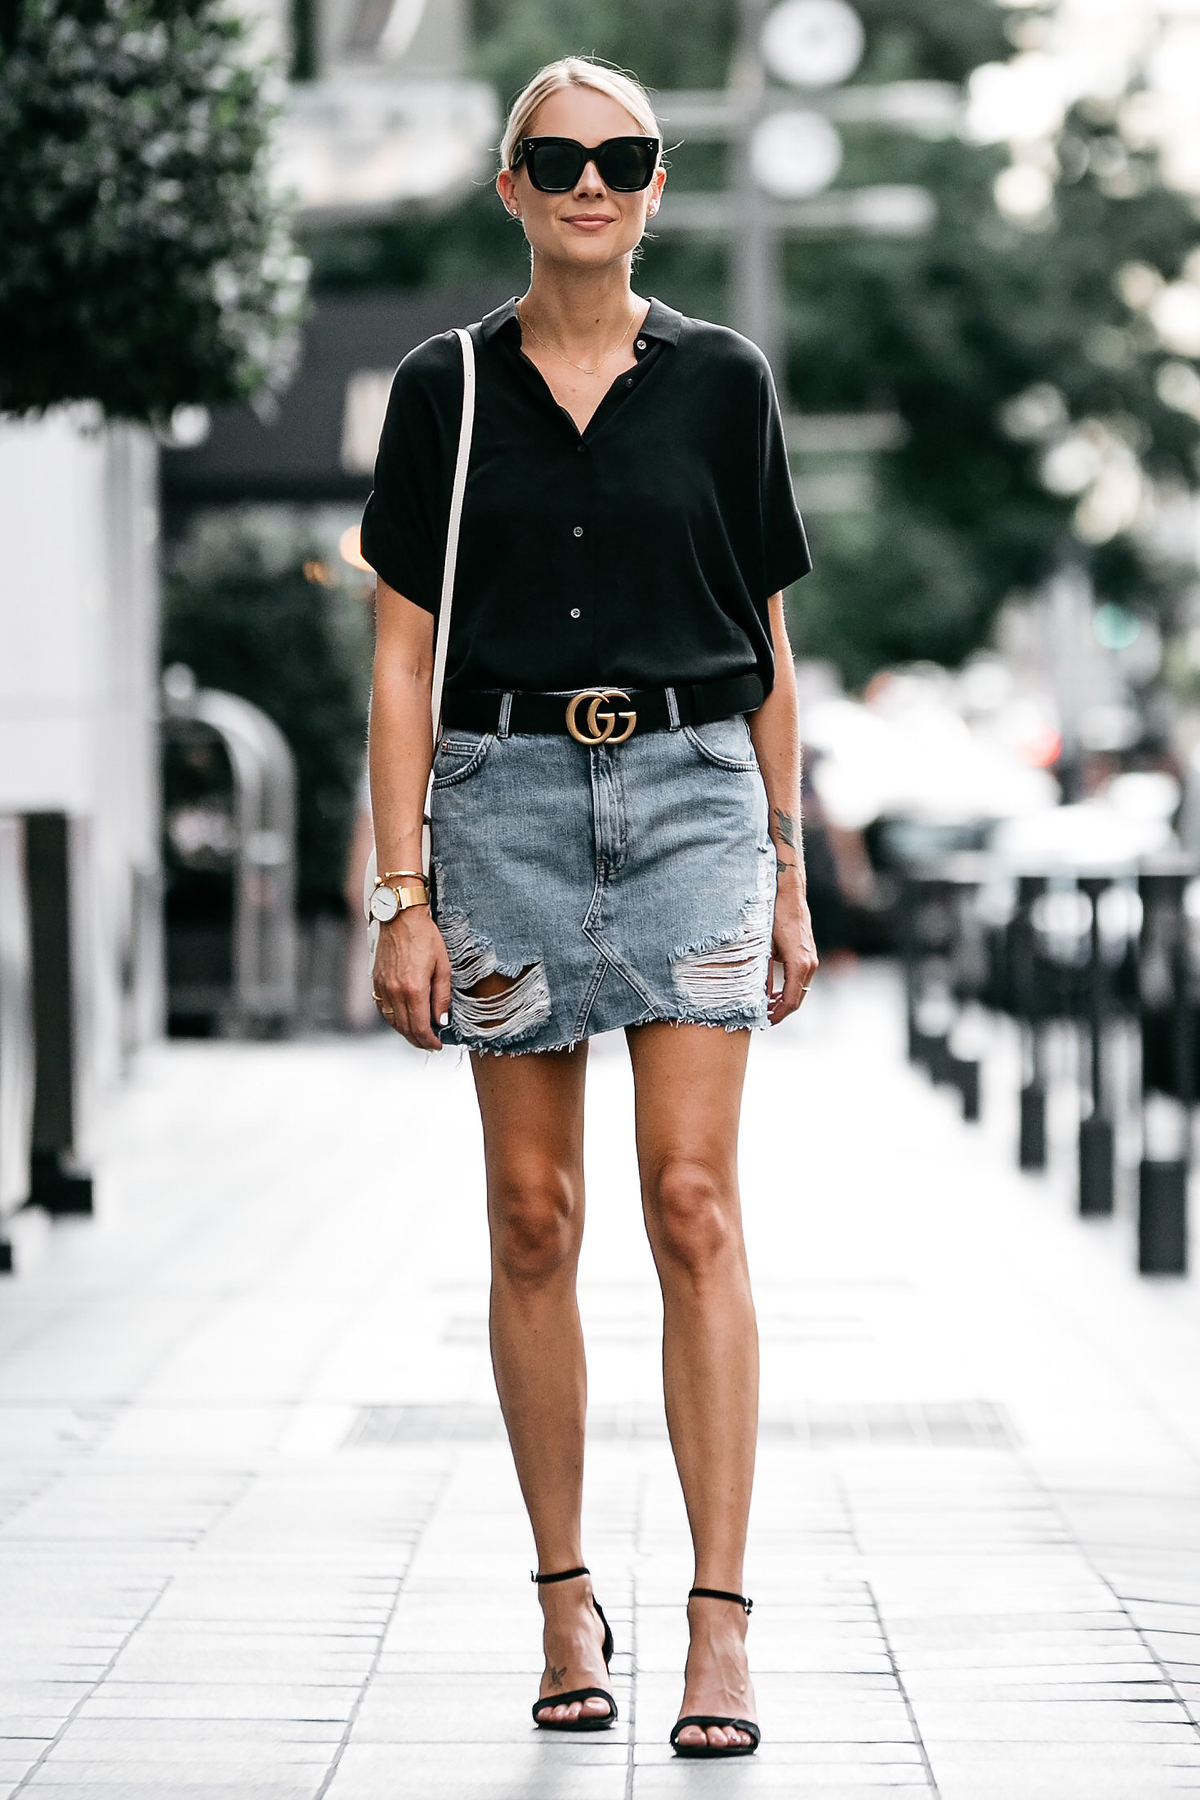 f59ad0f00bb Blonde Woman Wearing Everlane Black Short Sleeve Shirt Topshop Ripped Denim  Skirt Outfit Gucci Marmont Belt